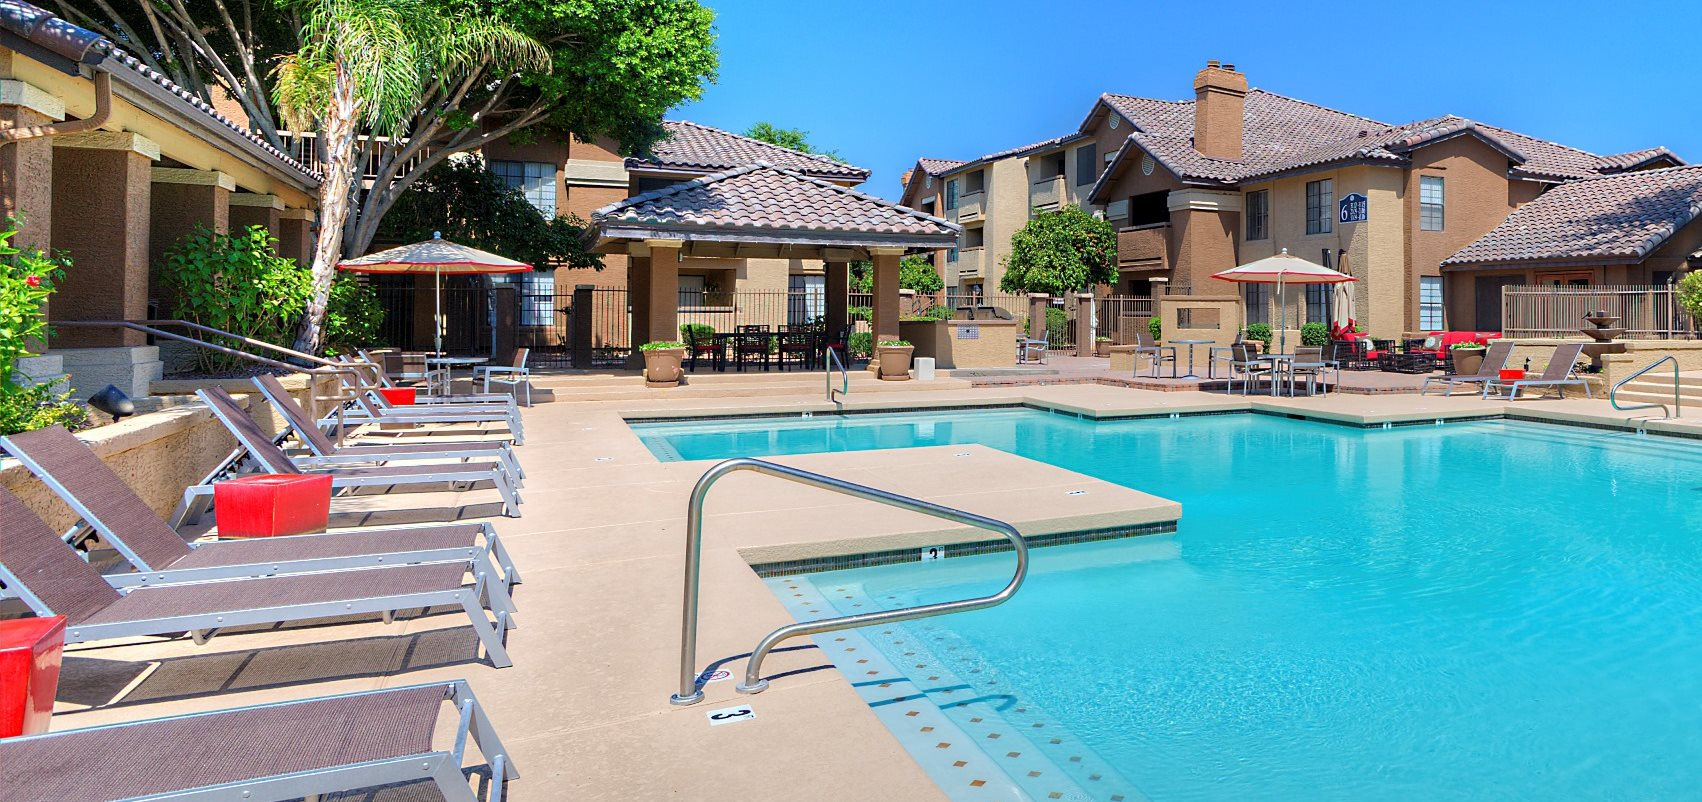 Pool Side at Garden Grove Apartments, Tempe, AZ, 85283